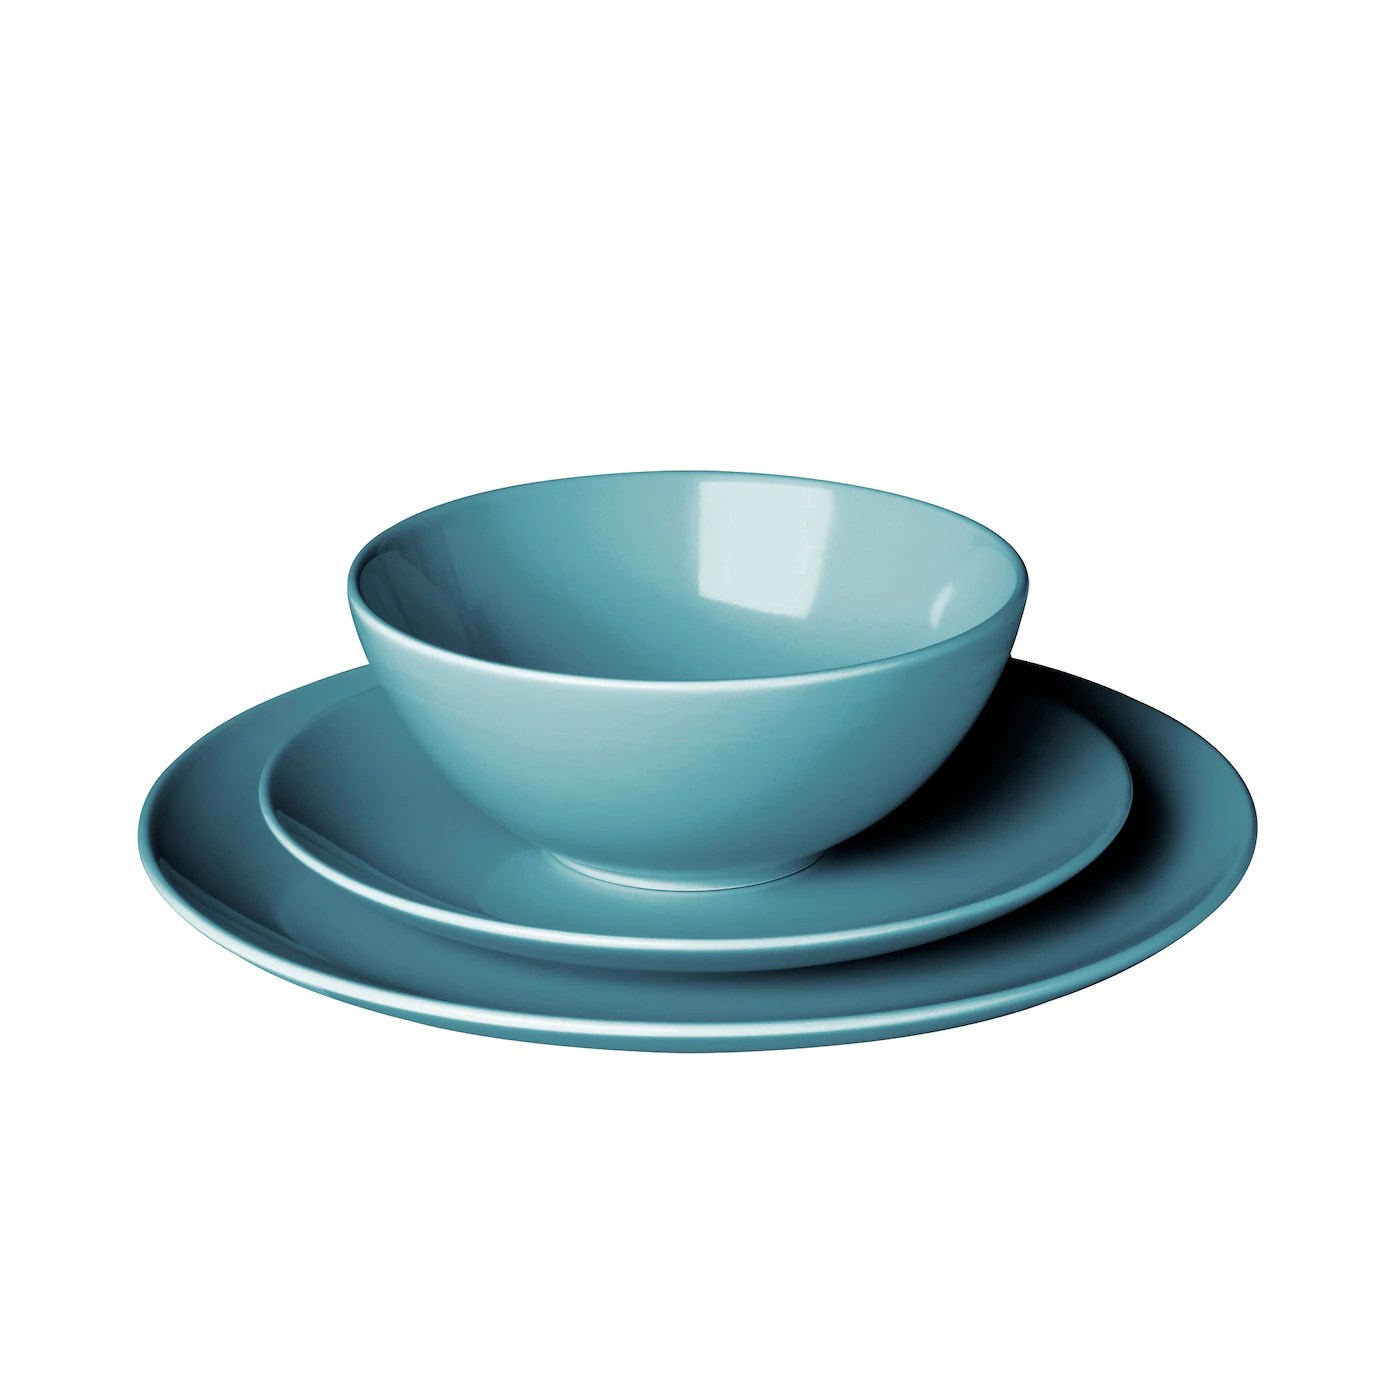 Dinner Sets & Dinnerware